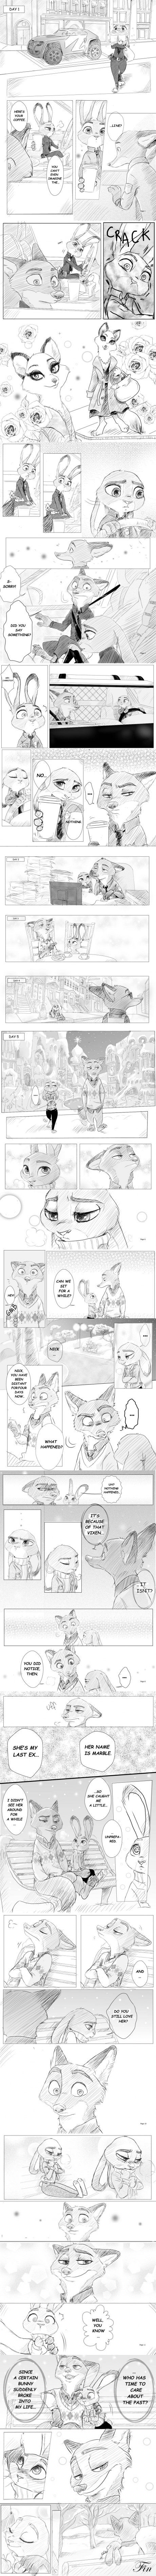 Zootopia comic (by Rem289)